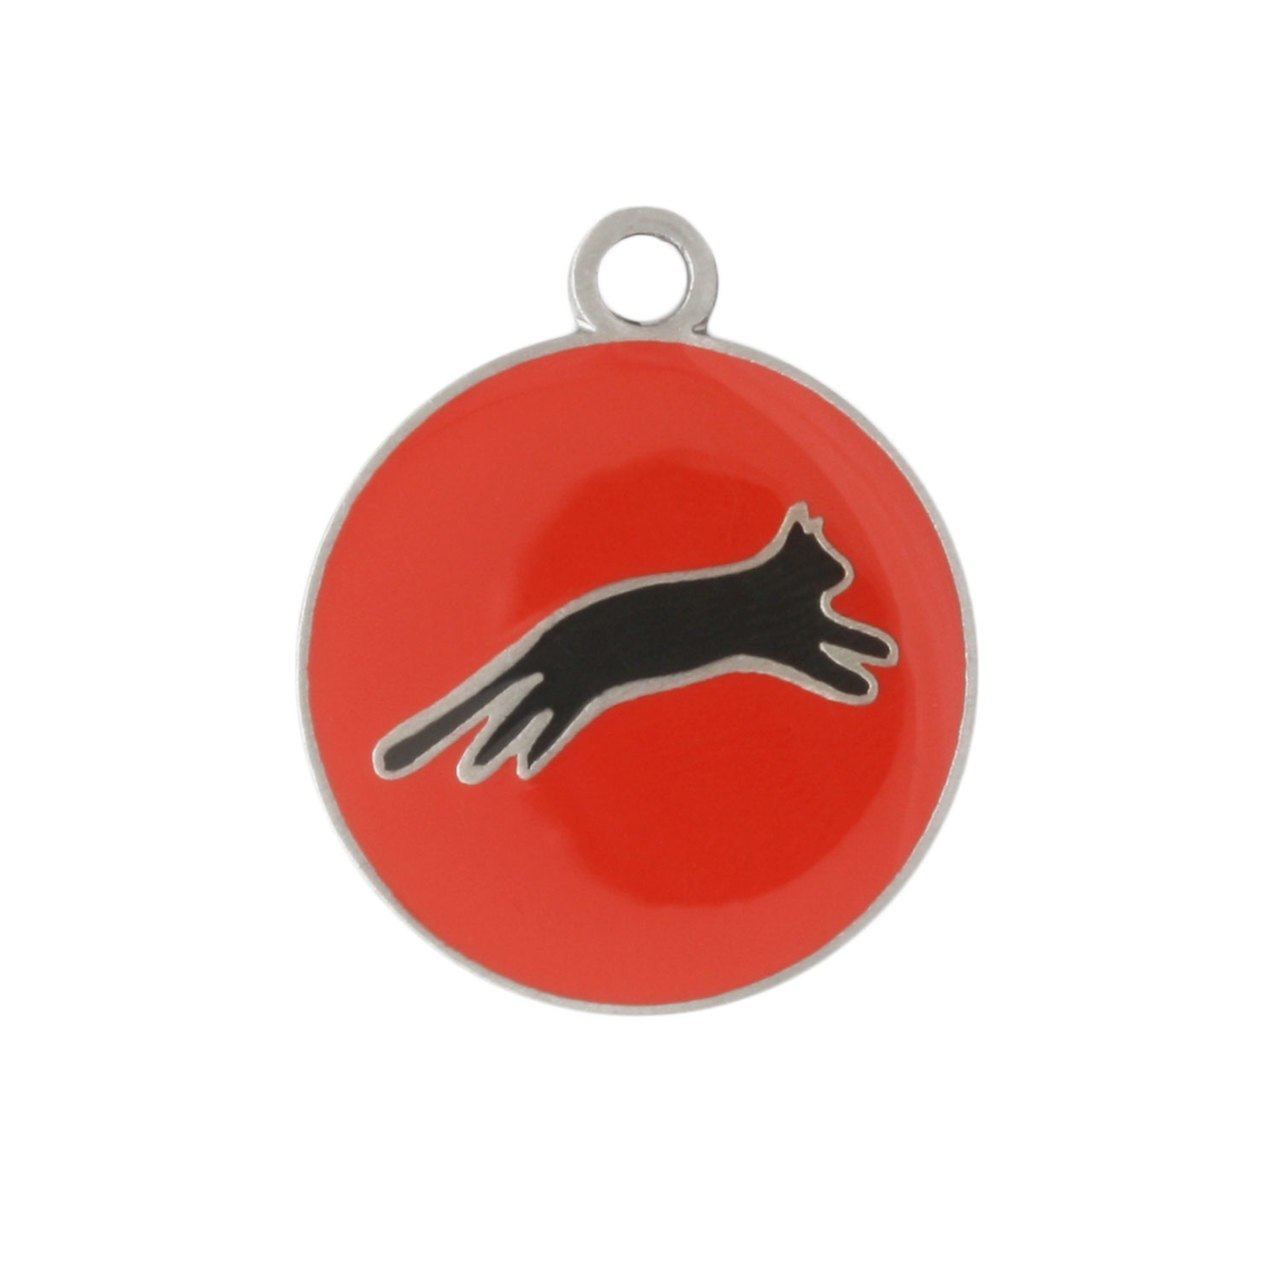 Painted Designer Cat ID Tags by Andrew Red Cat Jumping